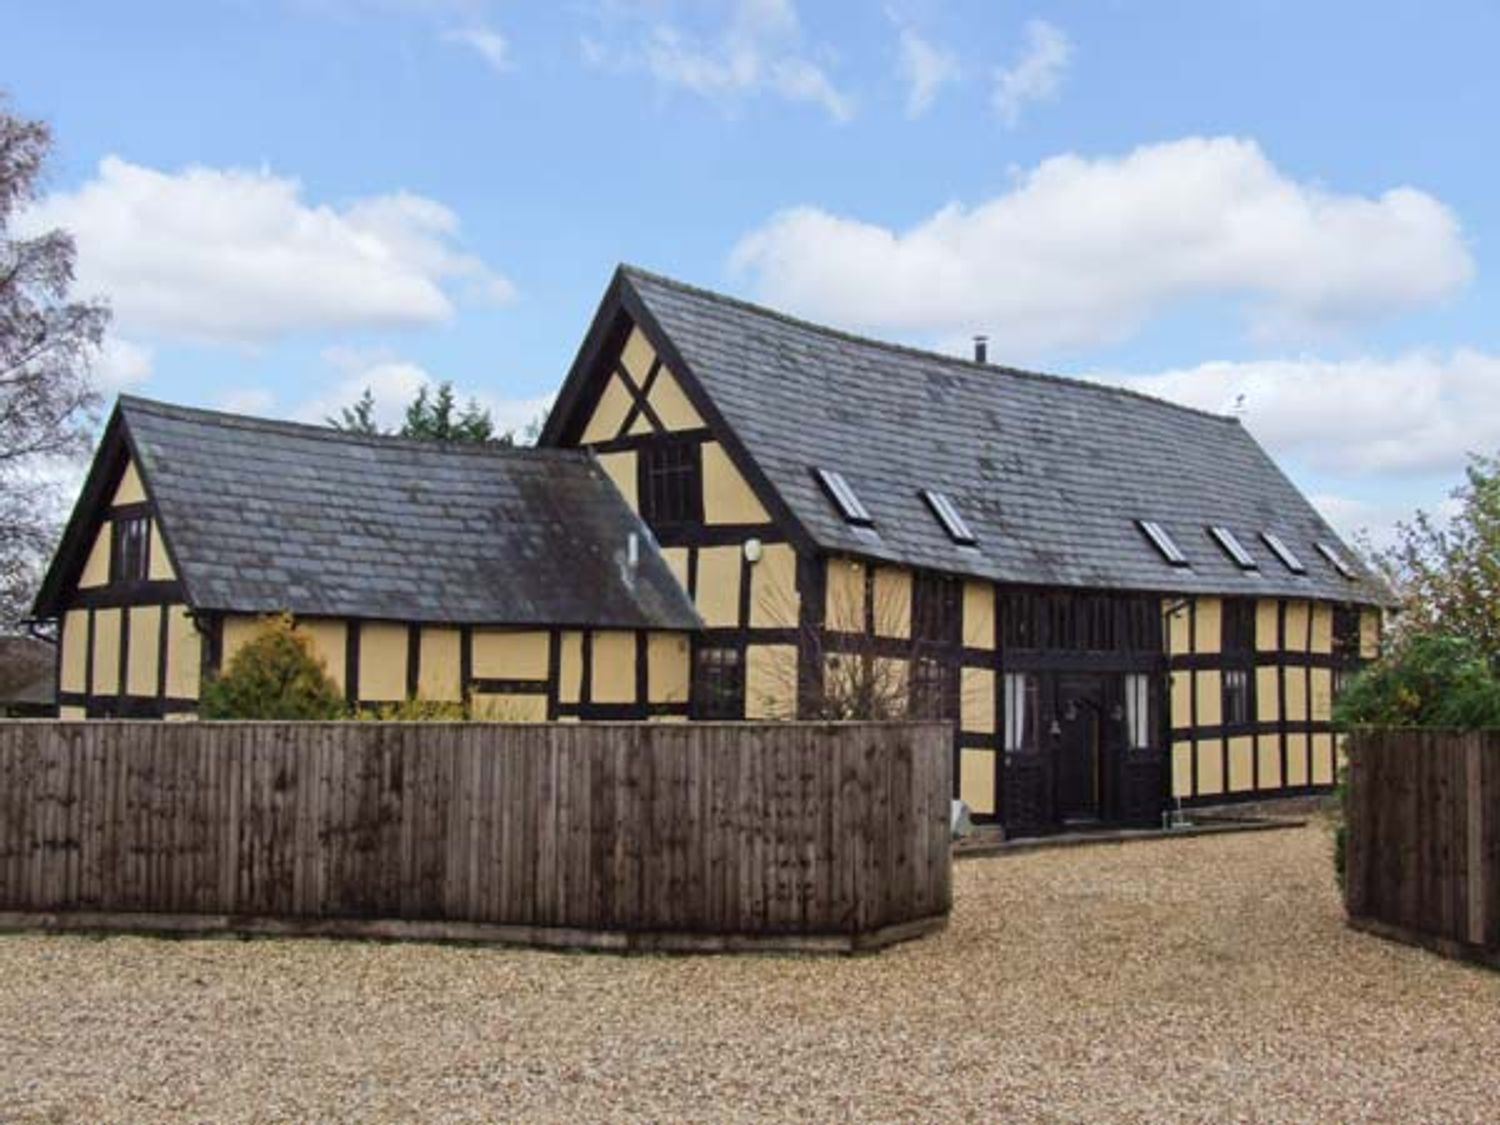 Stocks Barn - Herefordshire - 26508 - photo 1